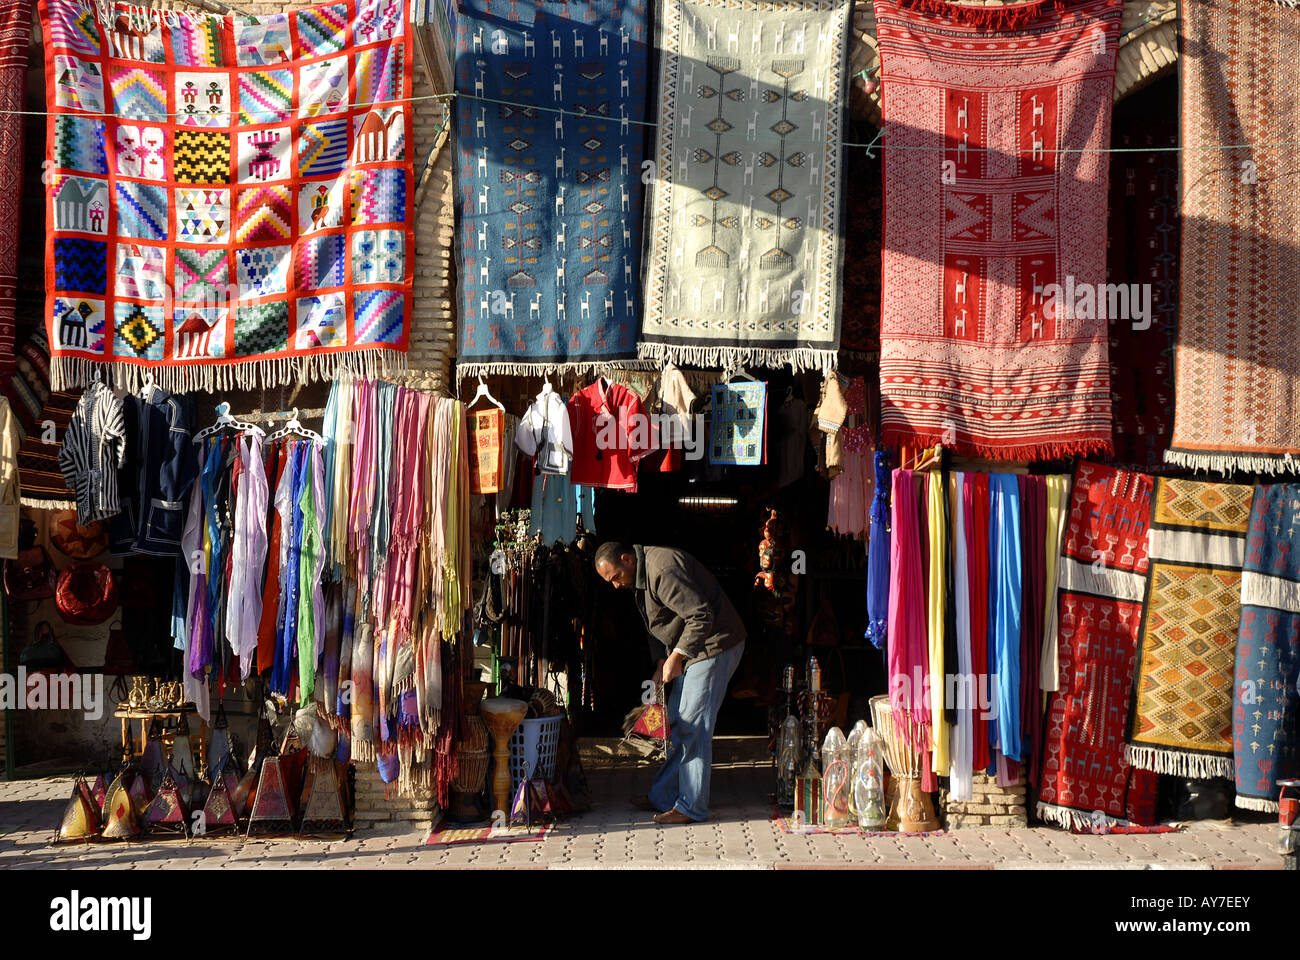 Local Handicrafts Clothes And Carpets In Tozeur Market Tunisia Stock